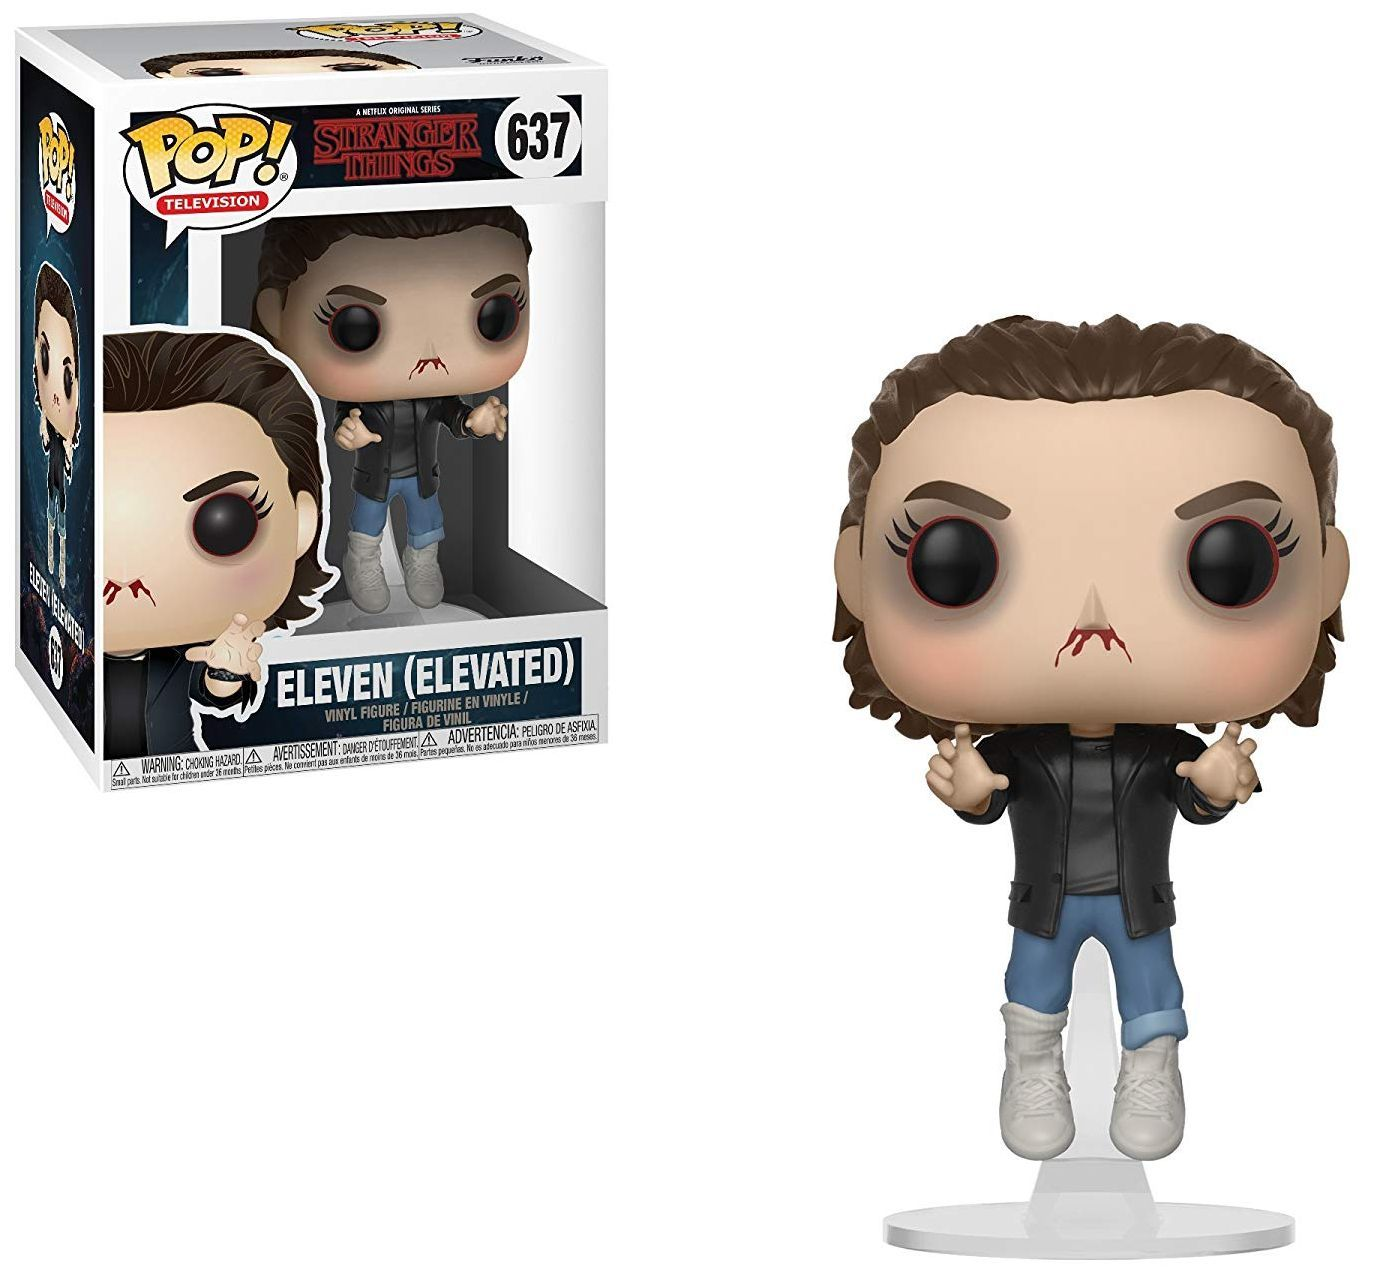 Фигура Funko Pop! Television: Stranger Things - Eleven Elevated, #637 - 2